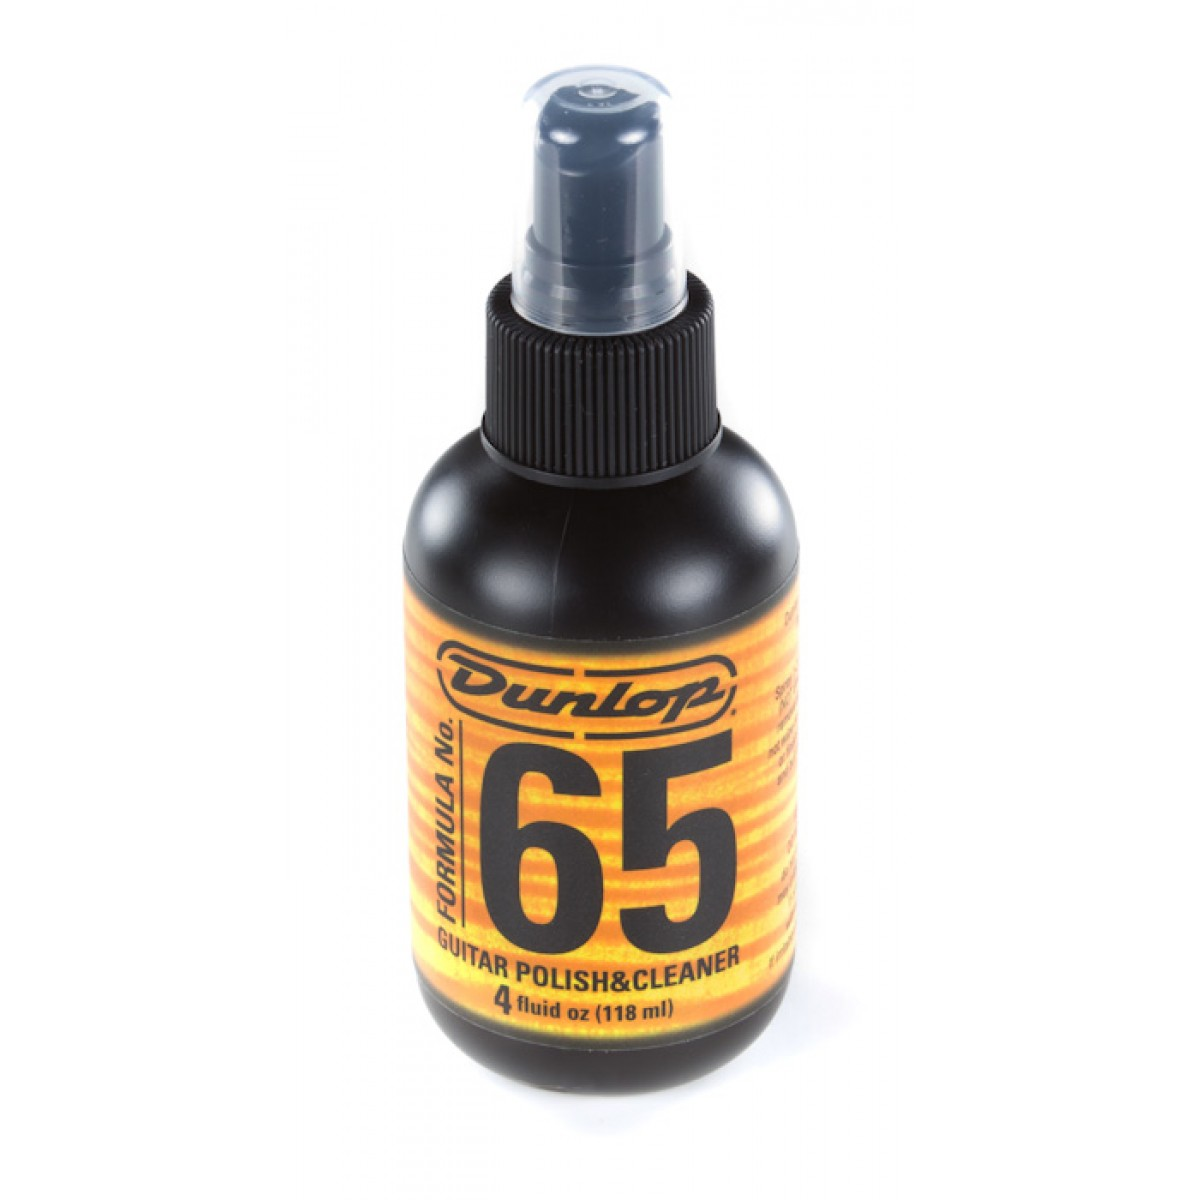 Dunlop 654 Formula No.65 Polish & Cleaner For Guitar